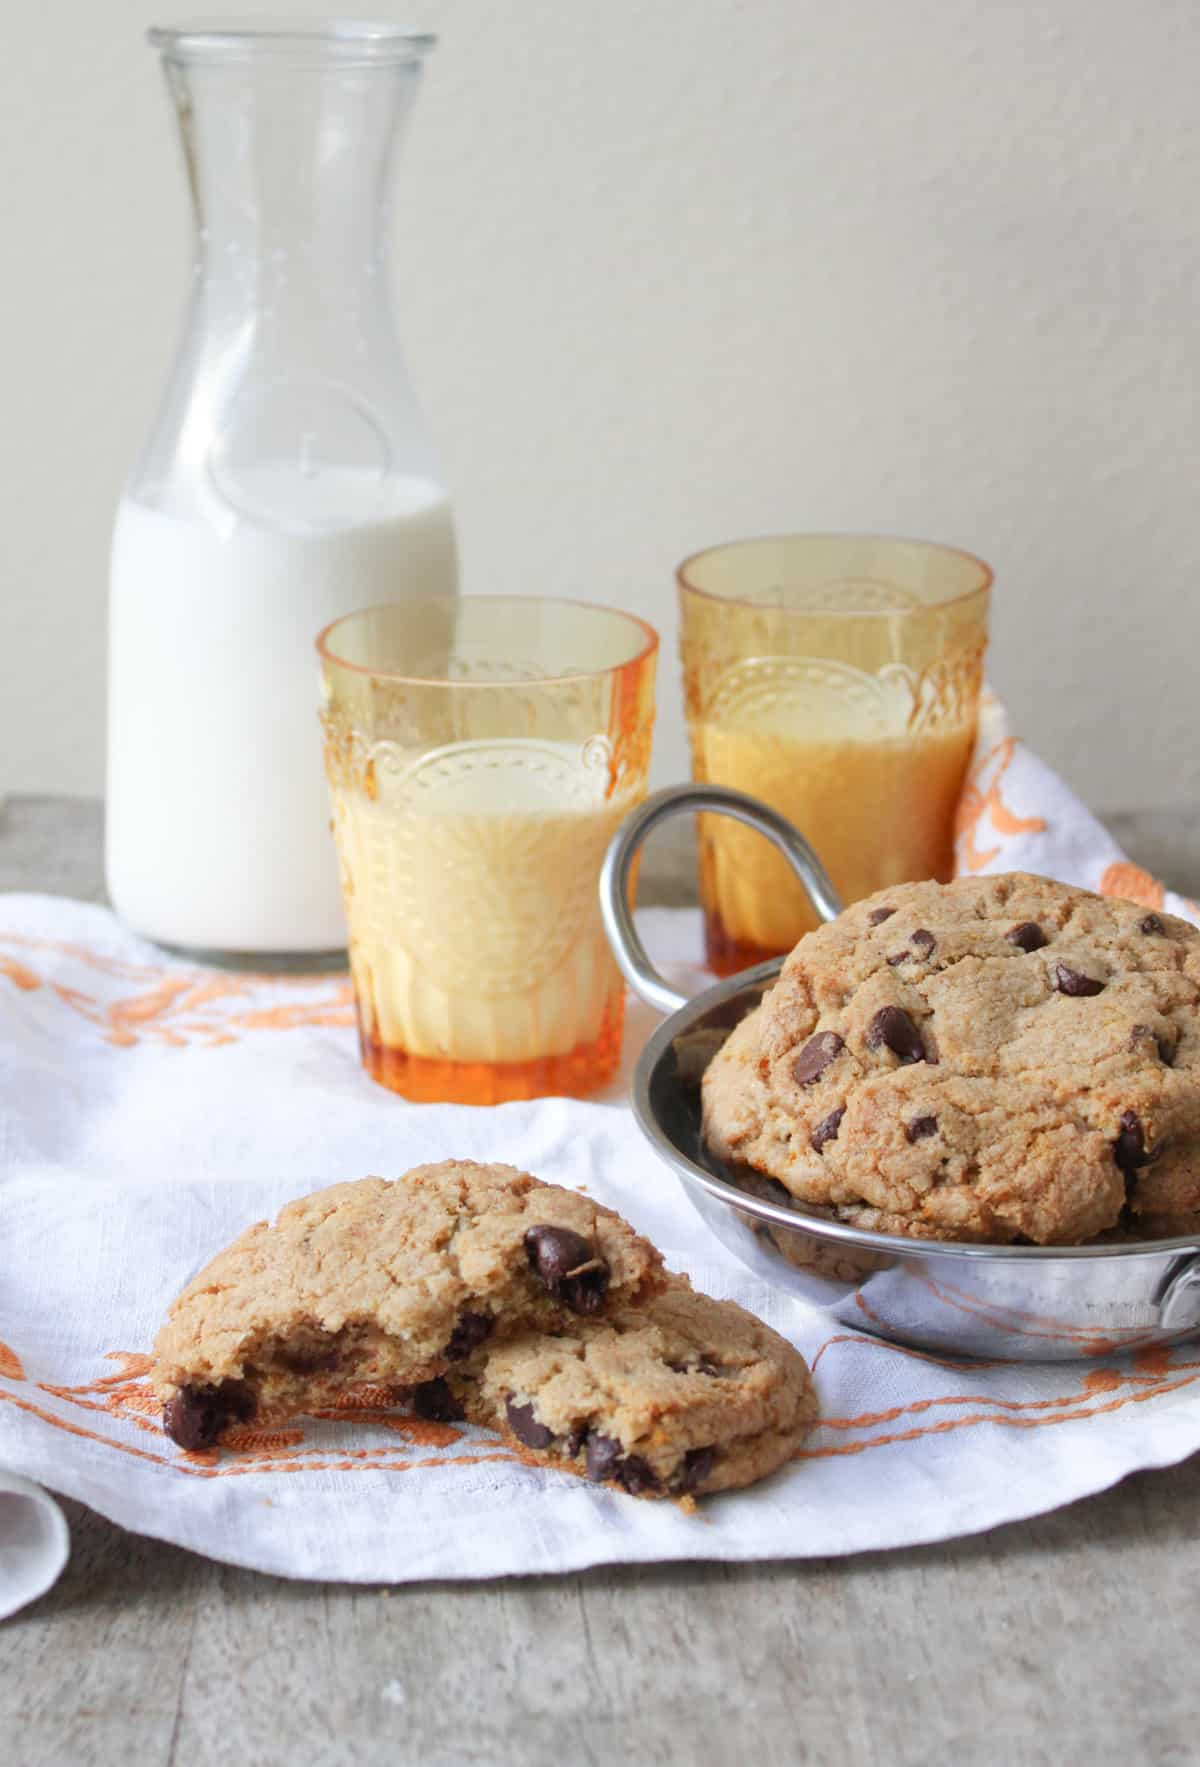 Orange Cardamom Chocolate Chip Cookies - The Little Epicurean